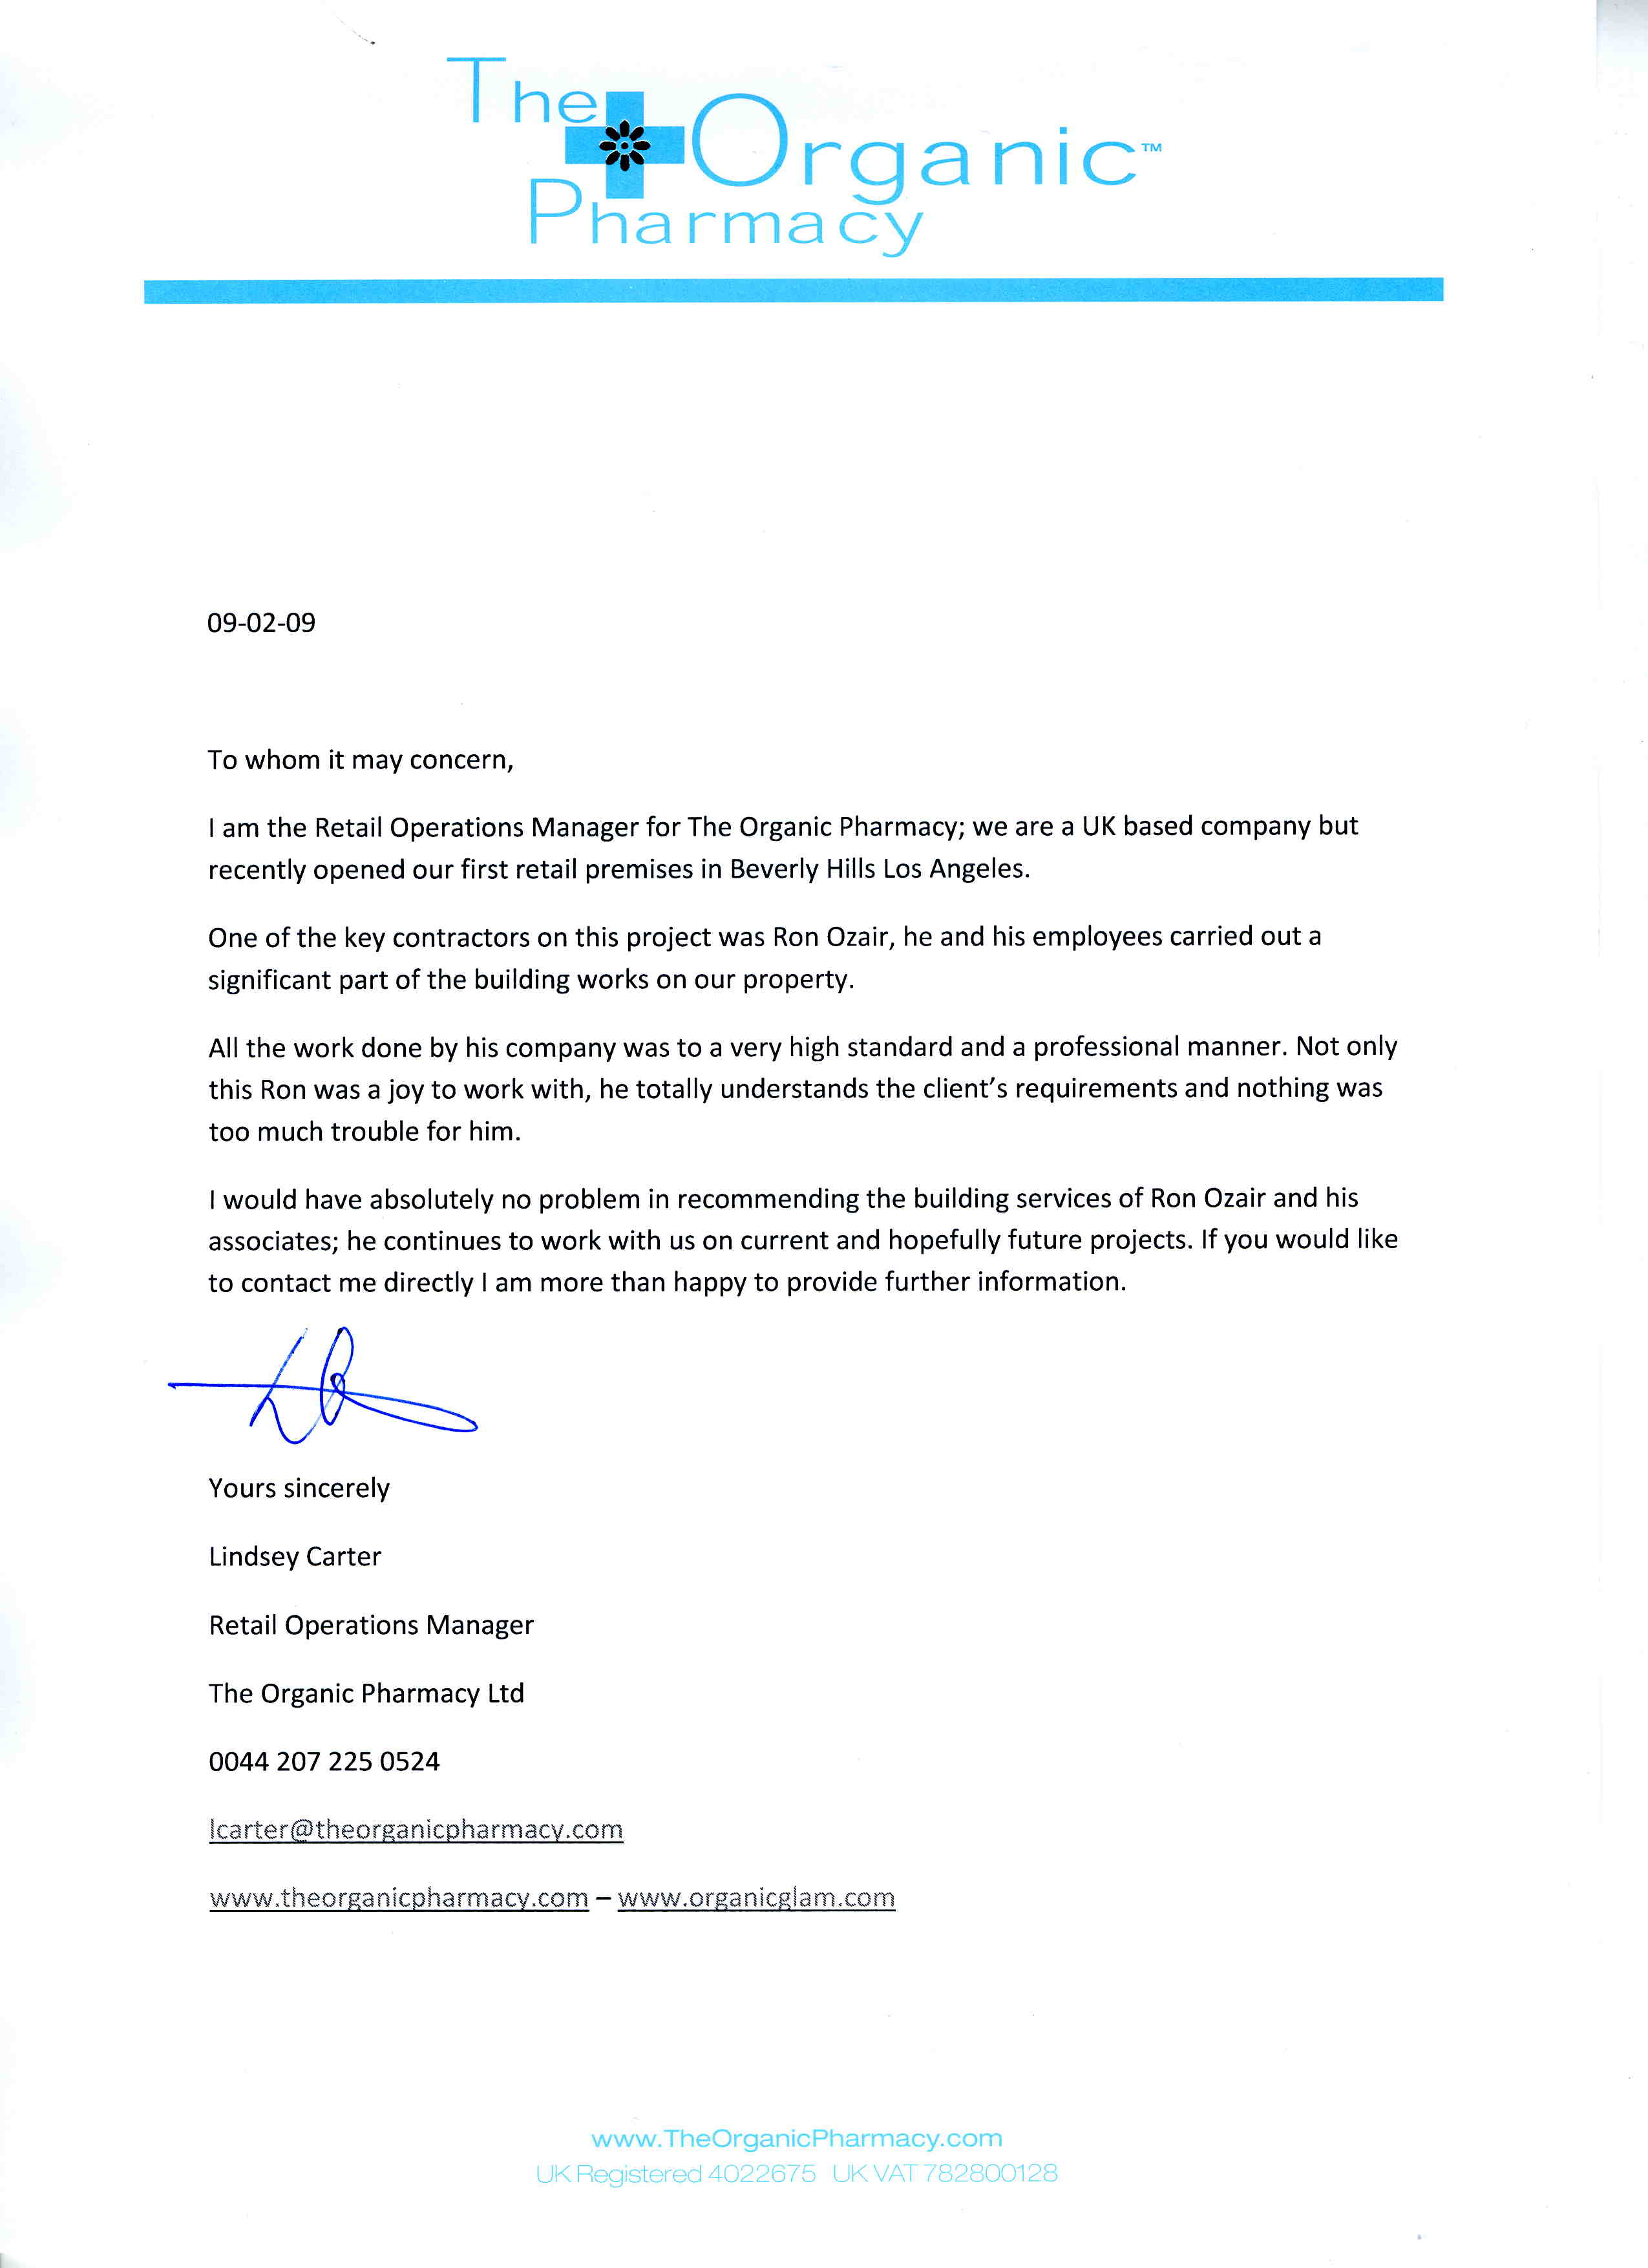 Recommendation Letter Sample For Clinical Pharmacist Retail Pharmacist Recommendation Letter